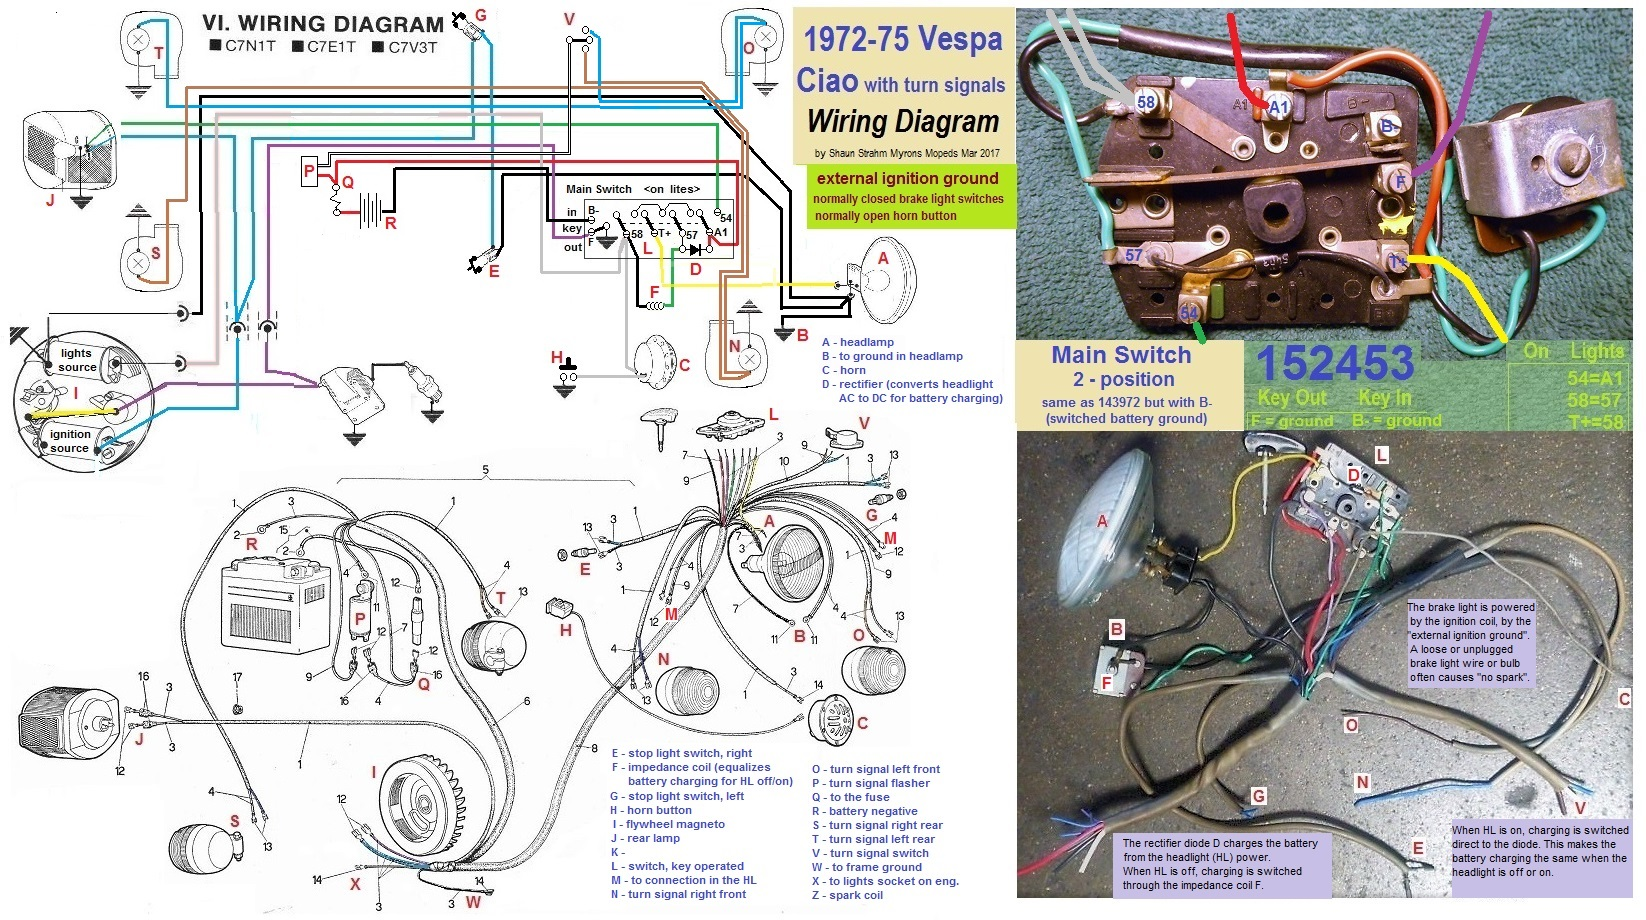 Diagram Vespa Electrical U00ab Myrons Mopeds